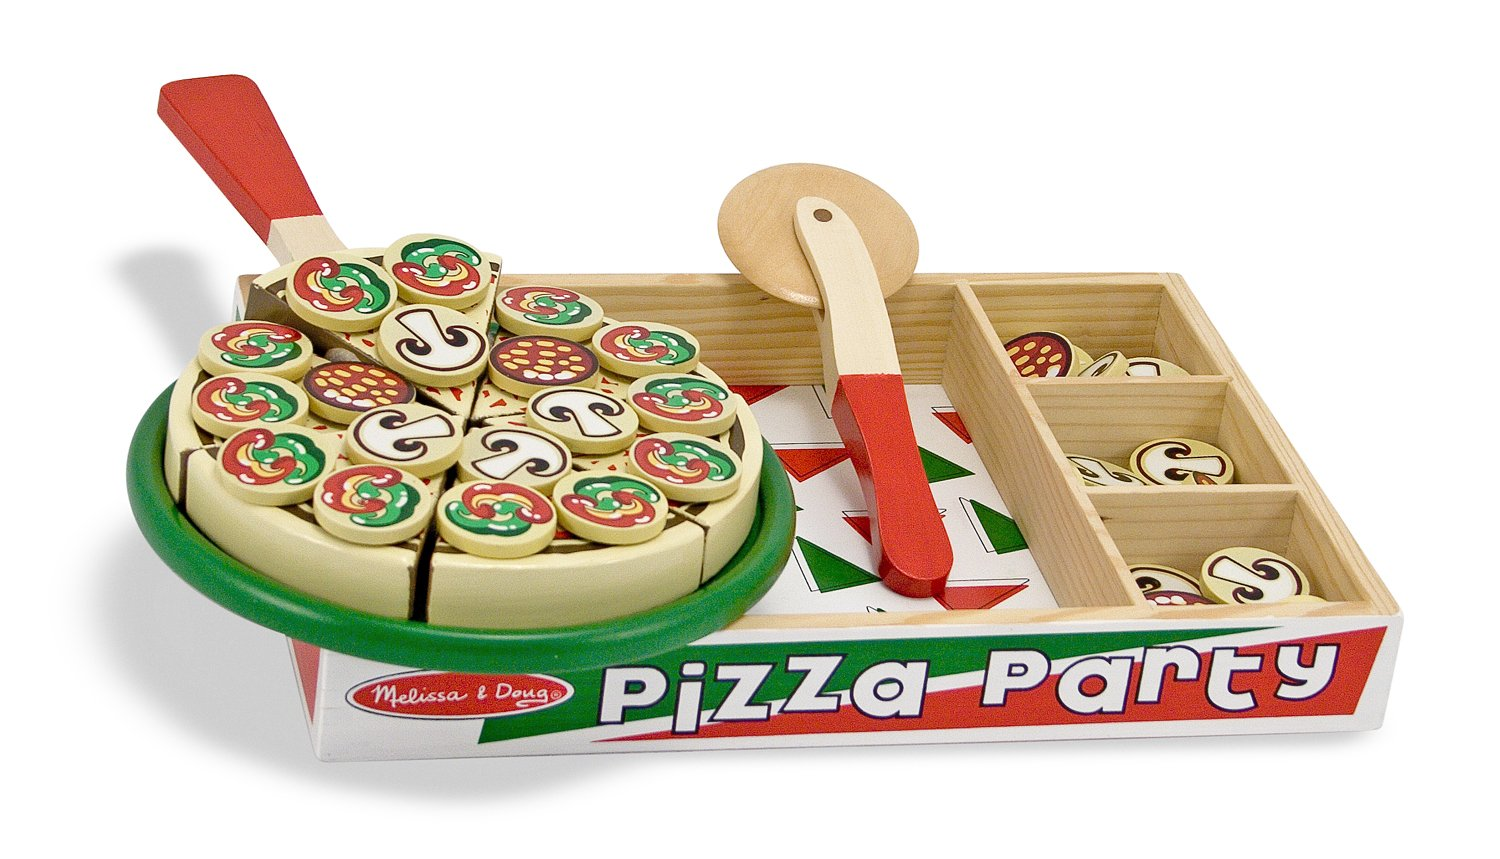 Melissa & Doug Pizza aus Holz - Holz Pizza